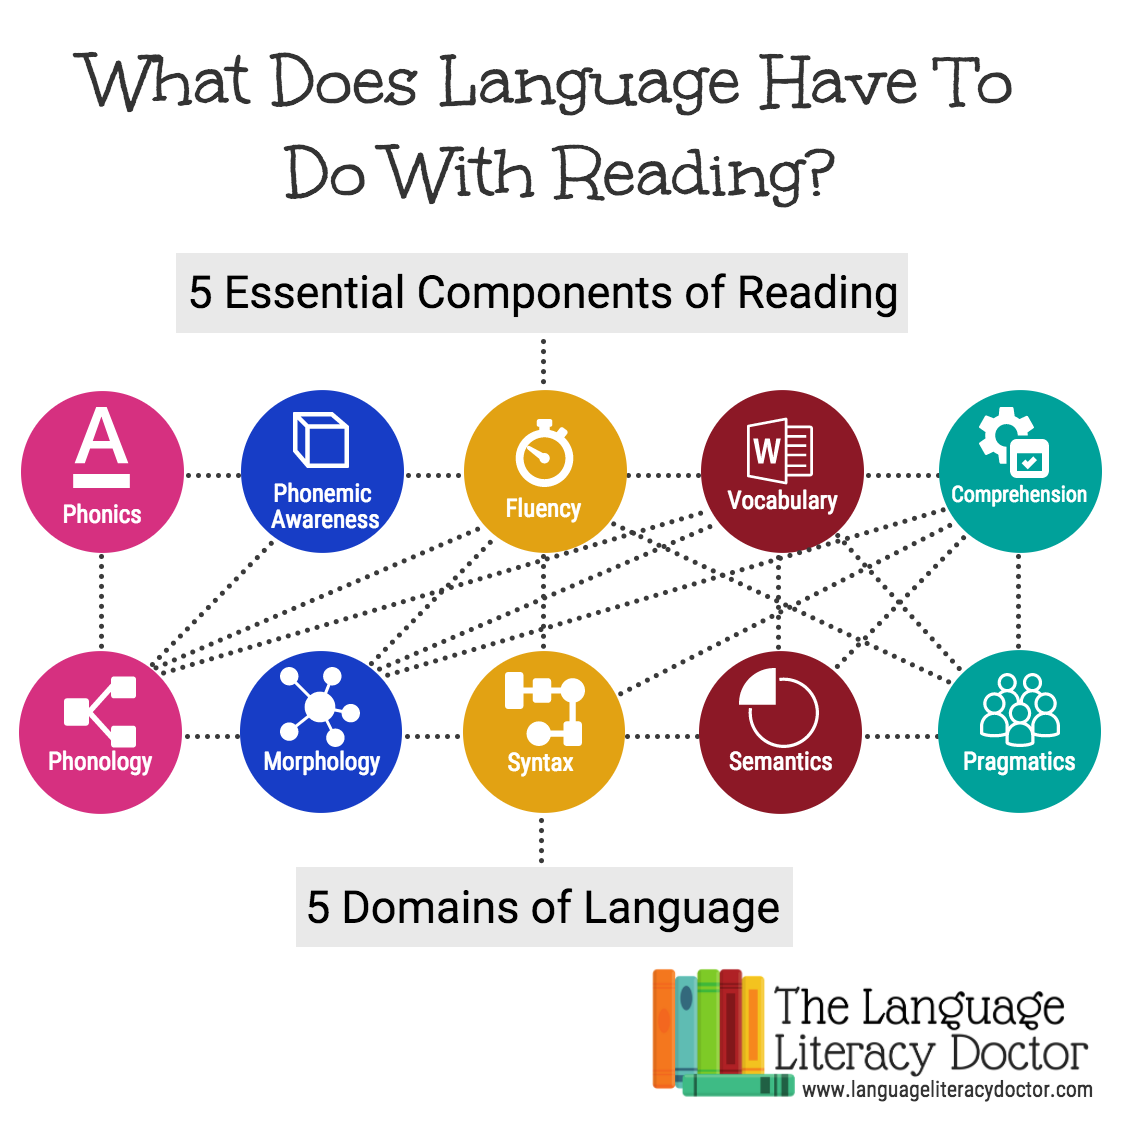 Language and Reading